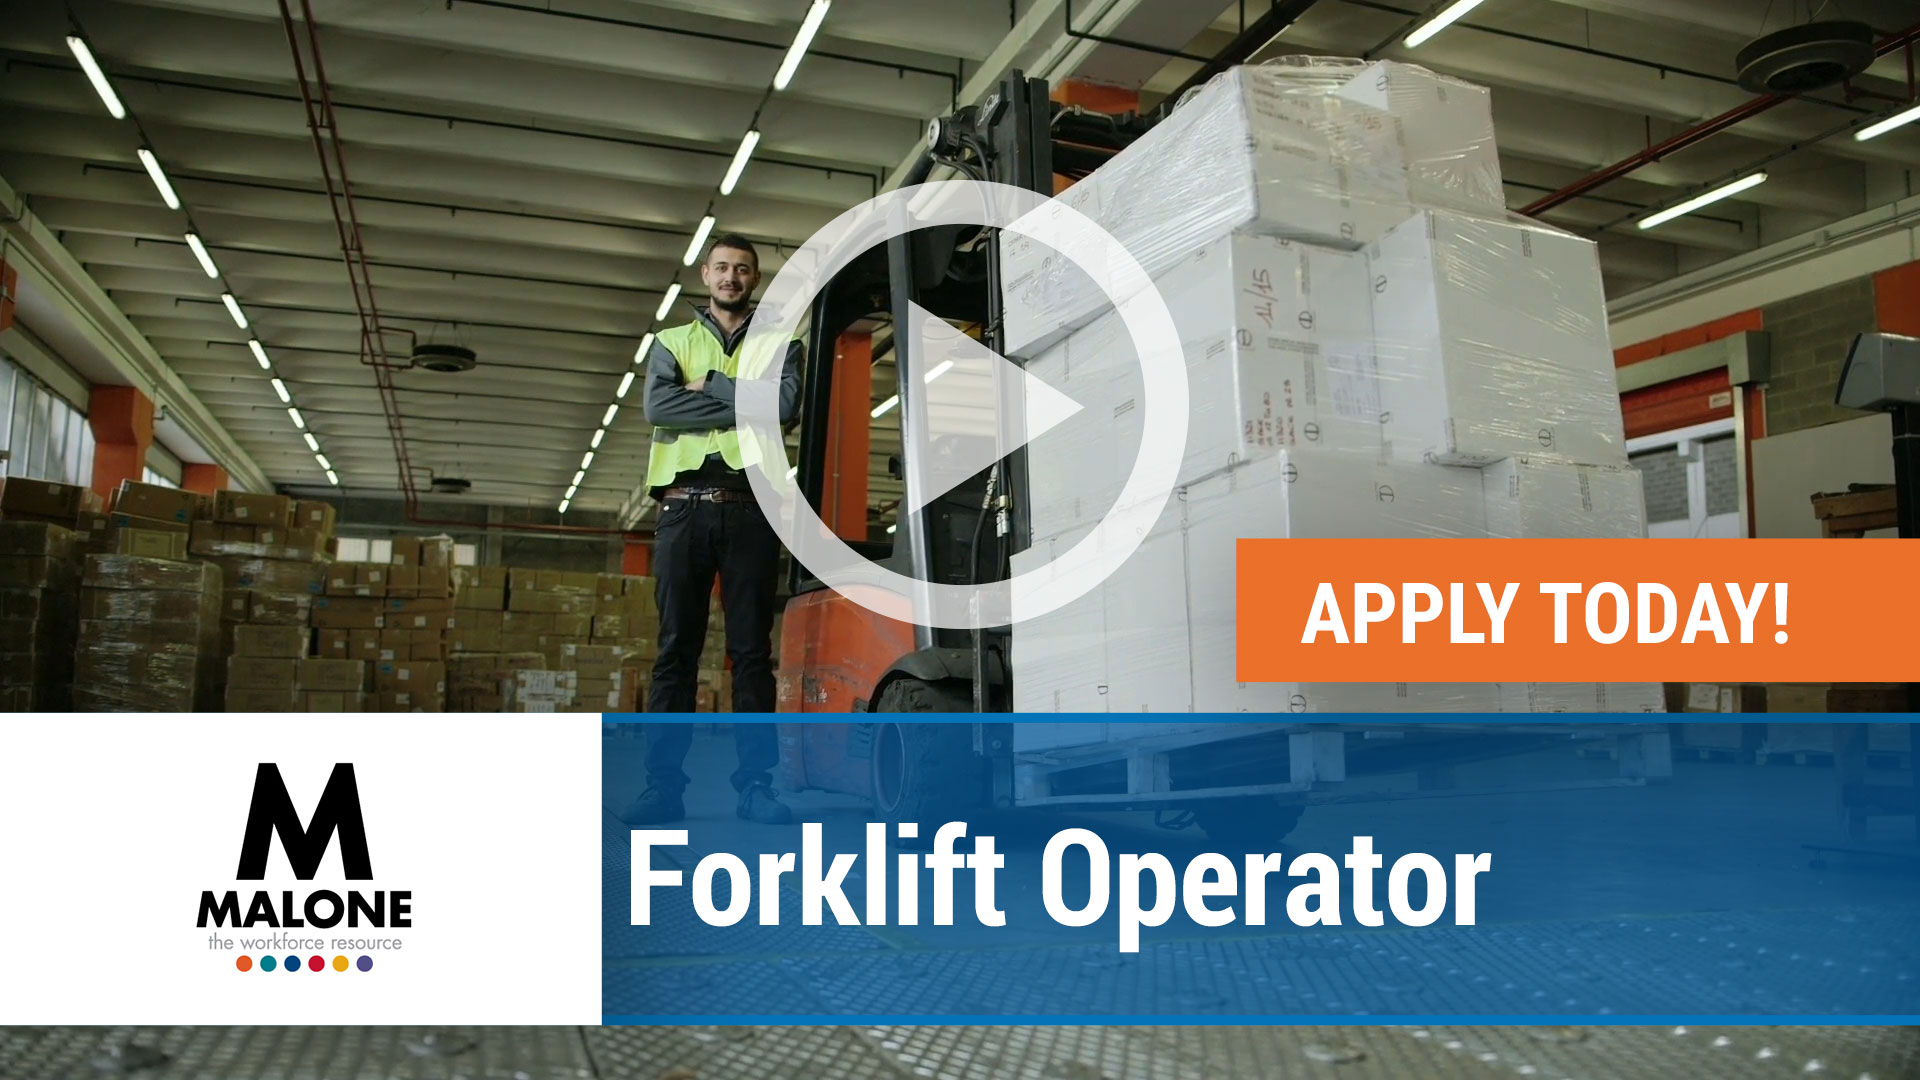 Watch our careers video for available job opening Forklift Operator in Aurora, Itasca, Hanover Park Illinois